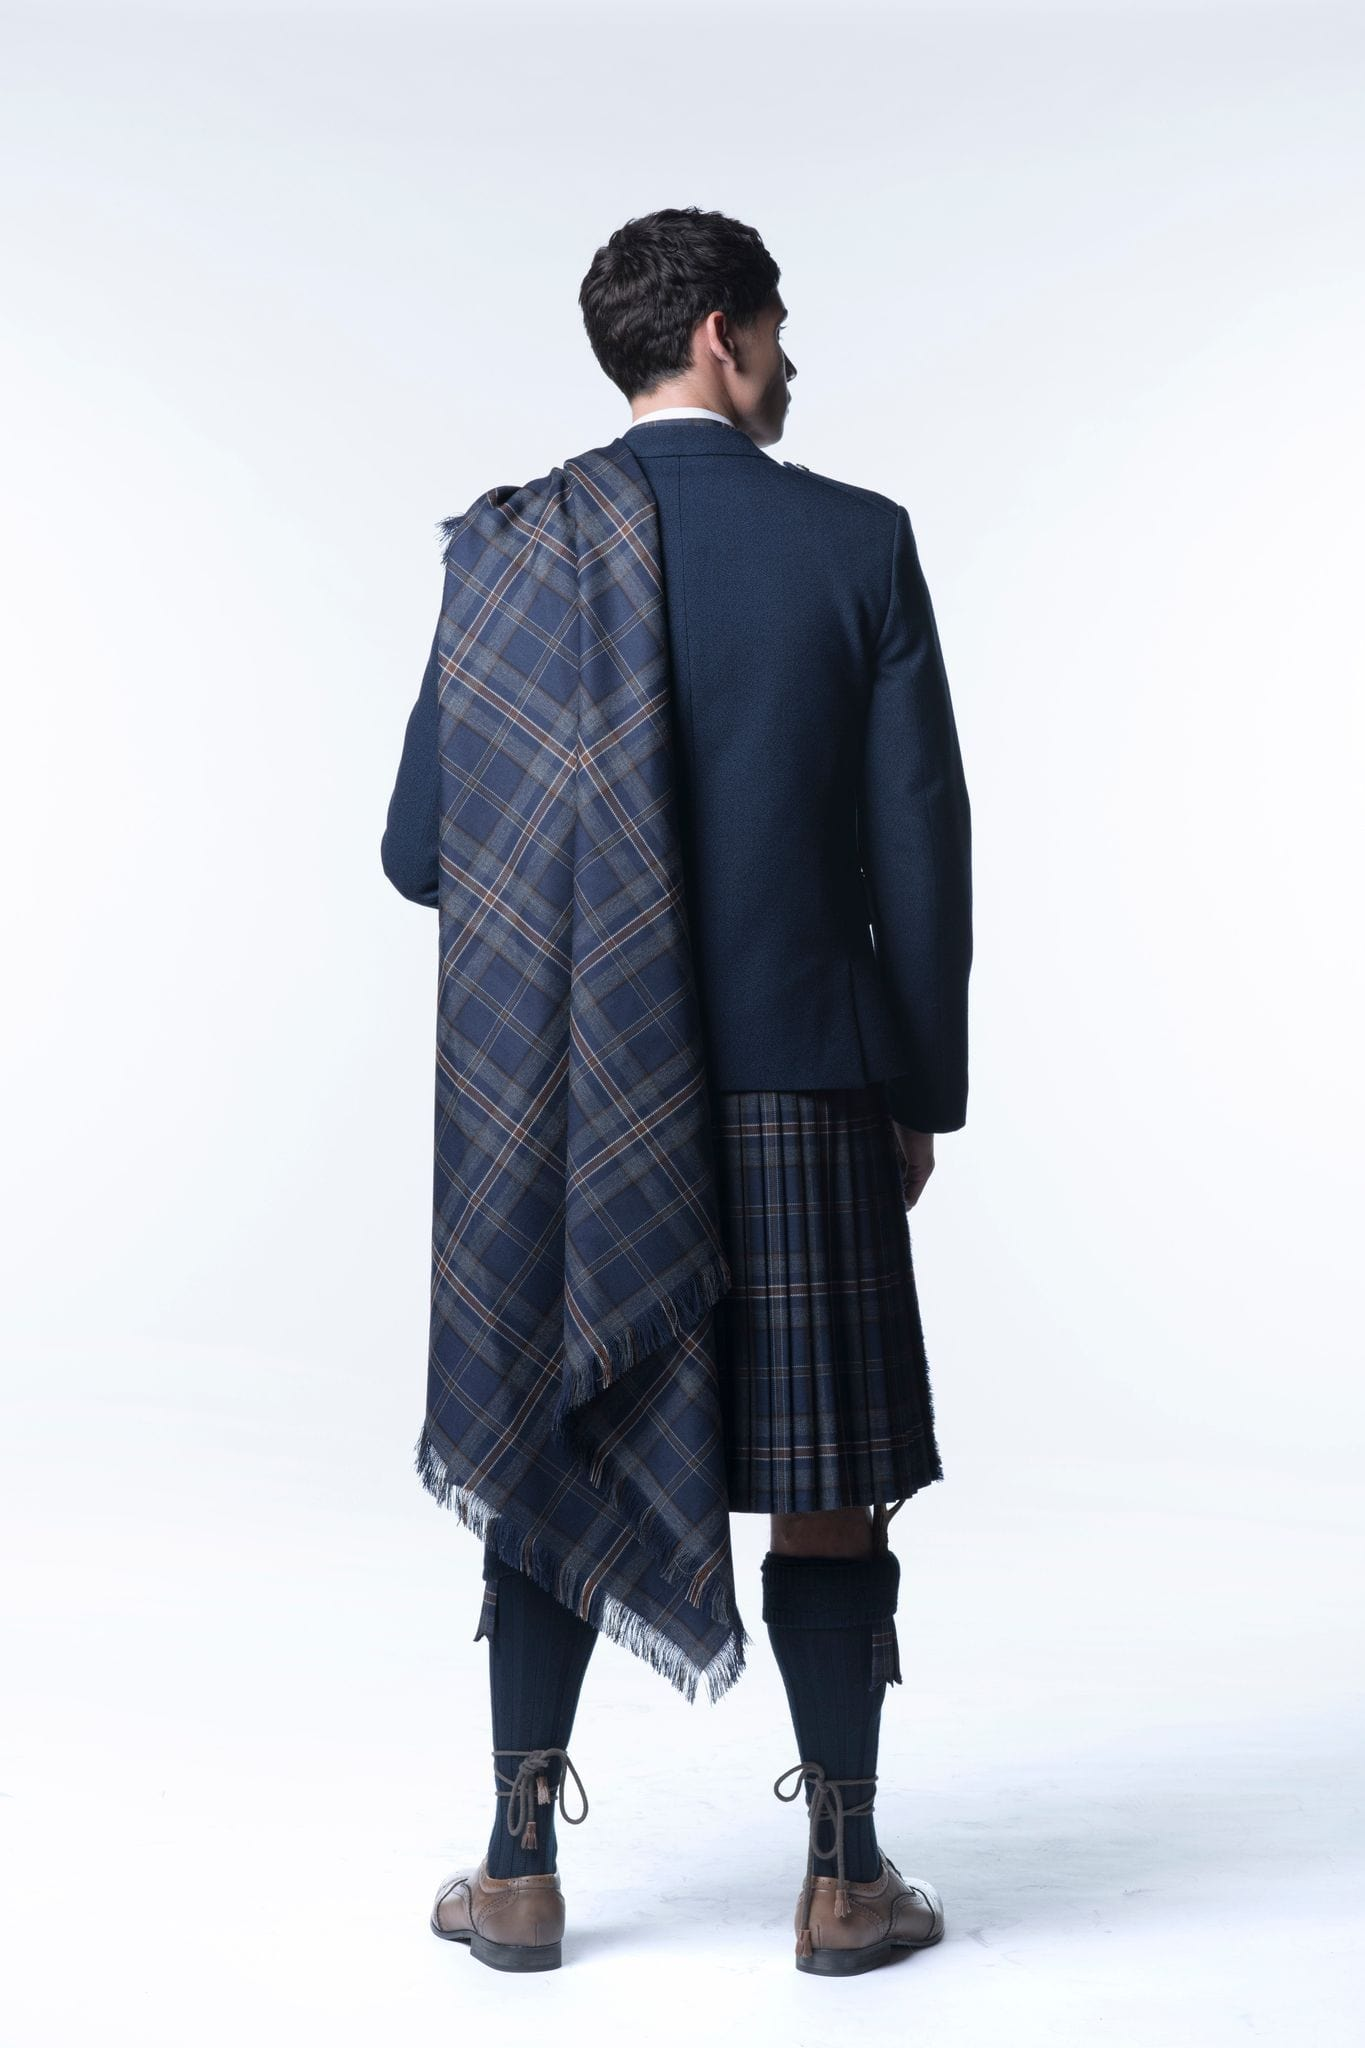 Fly Plaid - Choose Your Tartan - MacGregor and MacDuff